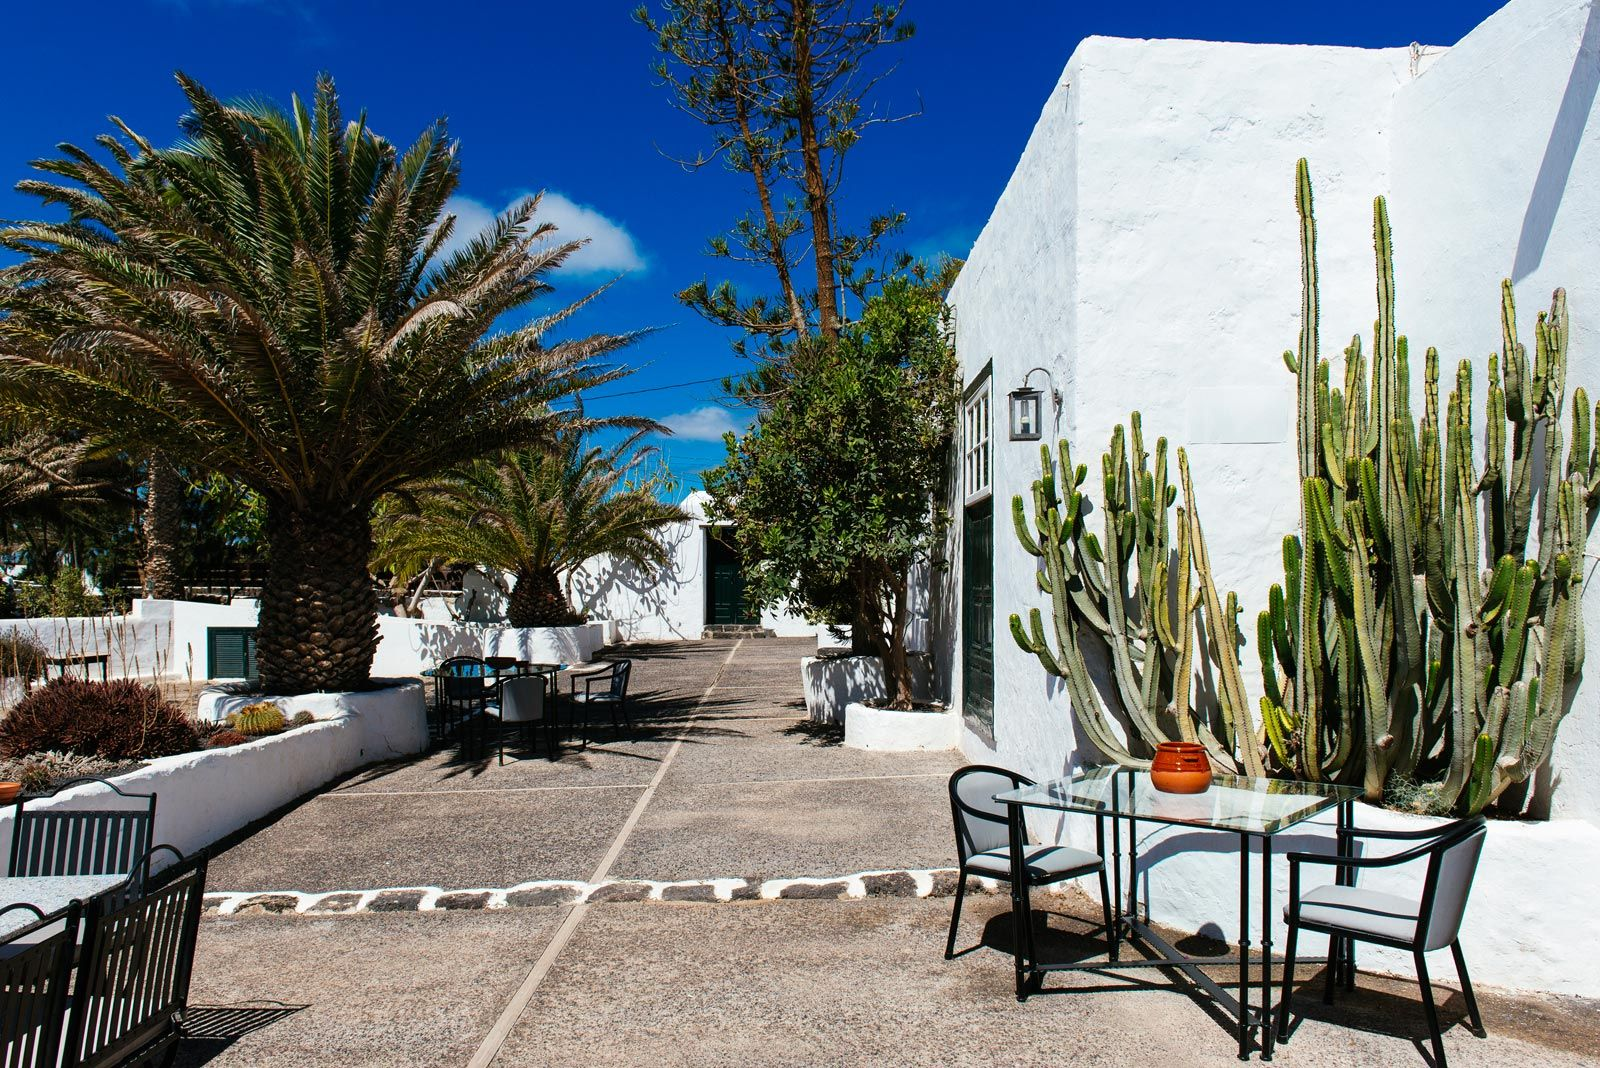 caseriodemozaga places to stay things to do Pinterest